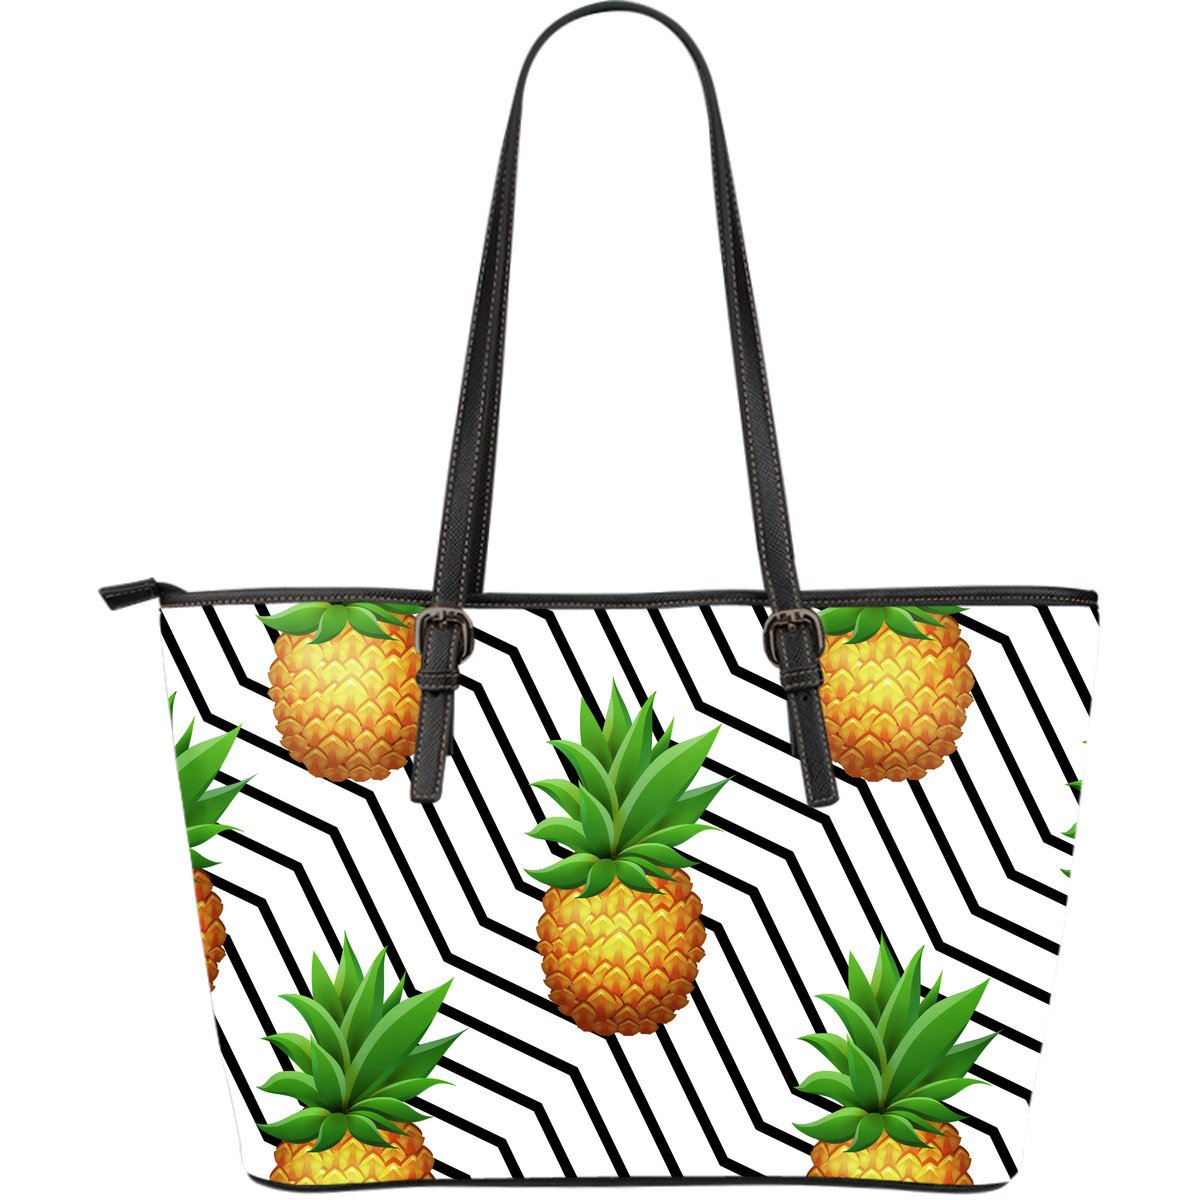 Black Geometric Pineapple Pattern Print Leather Tote Bag GearFrost